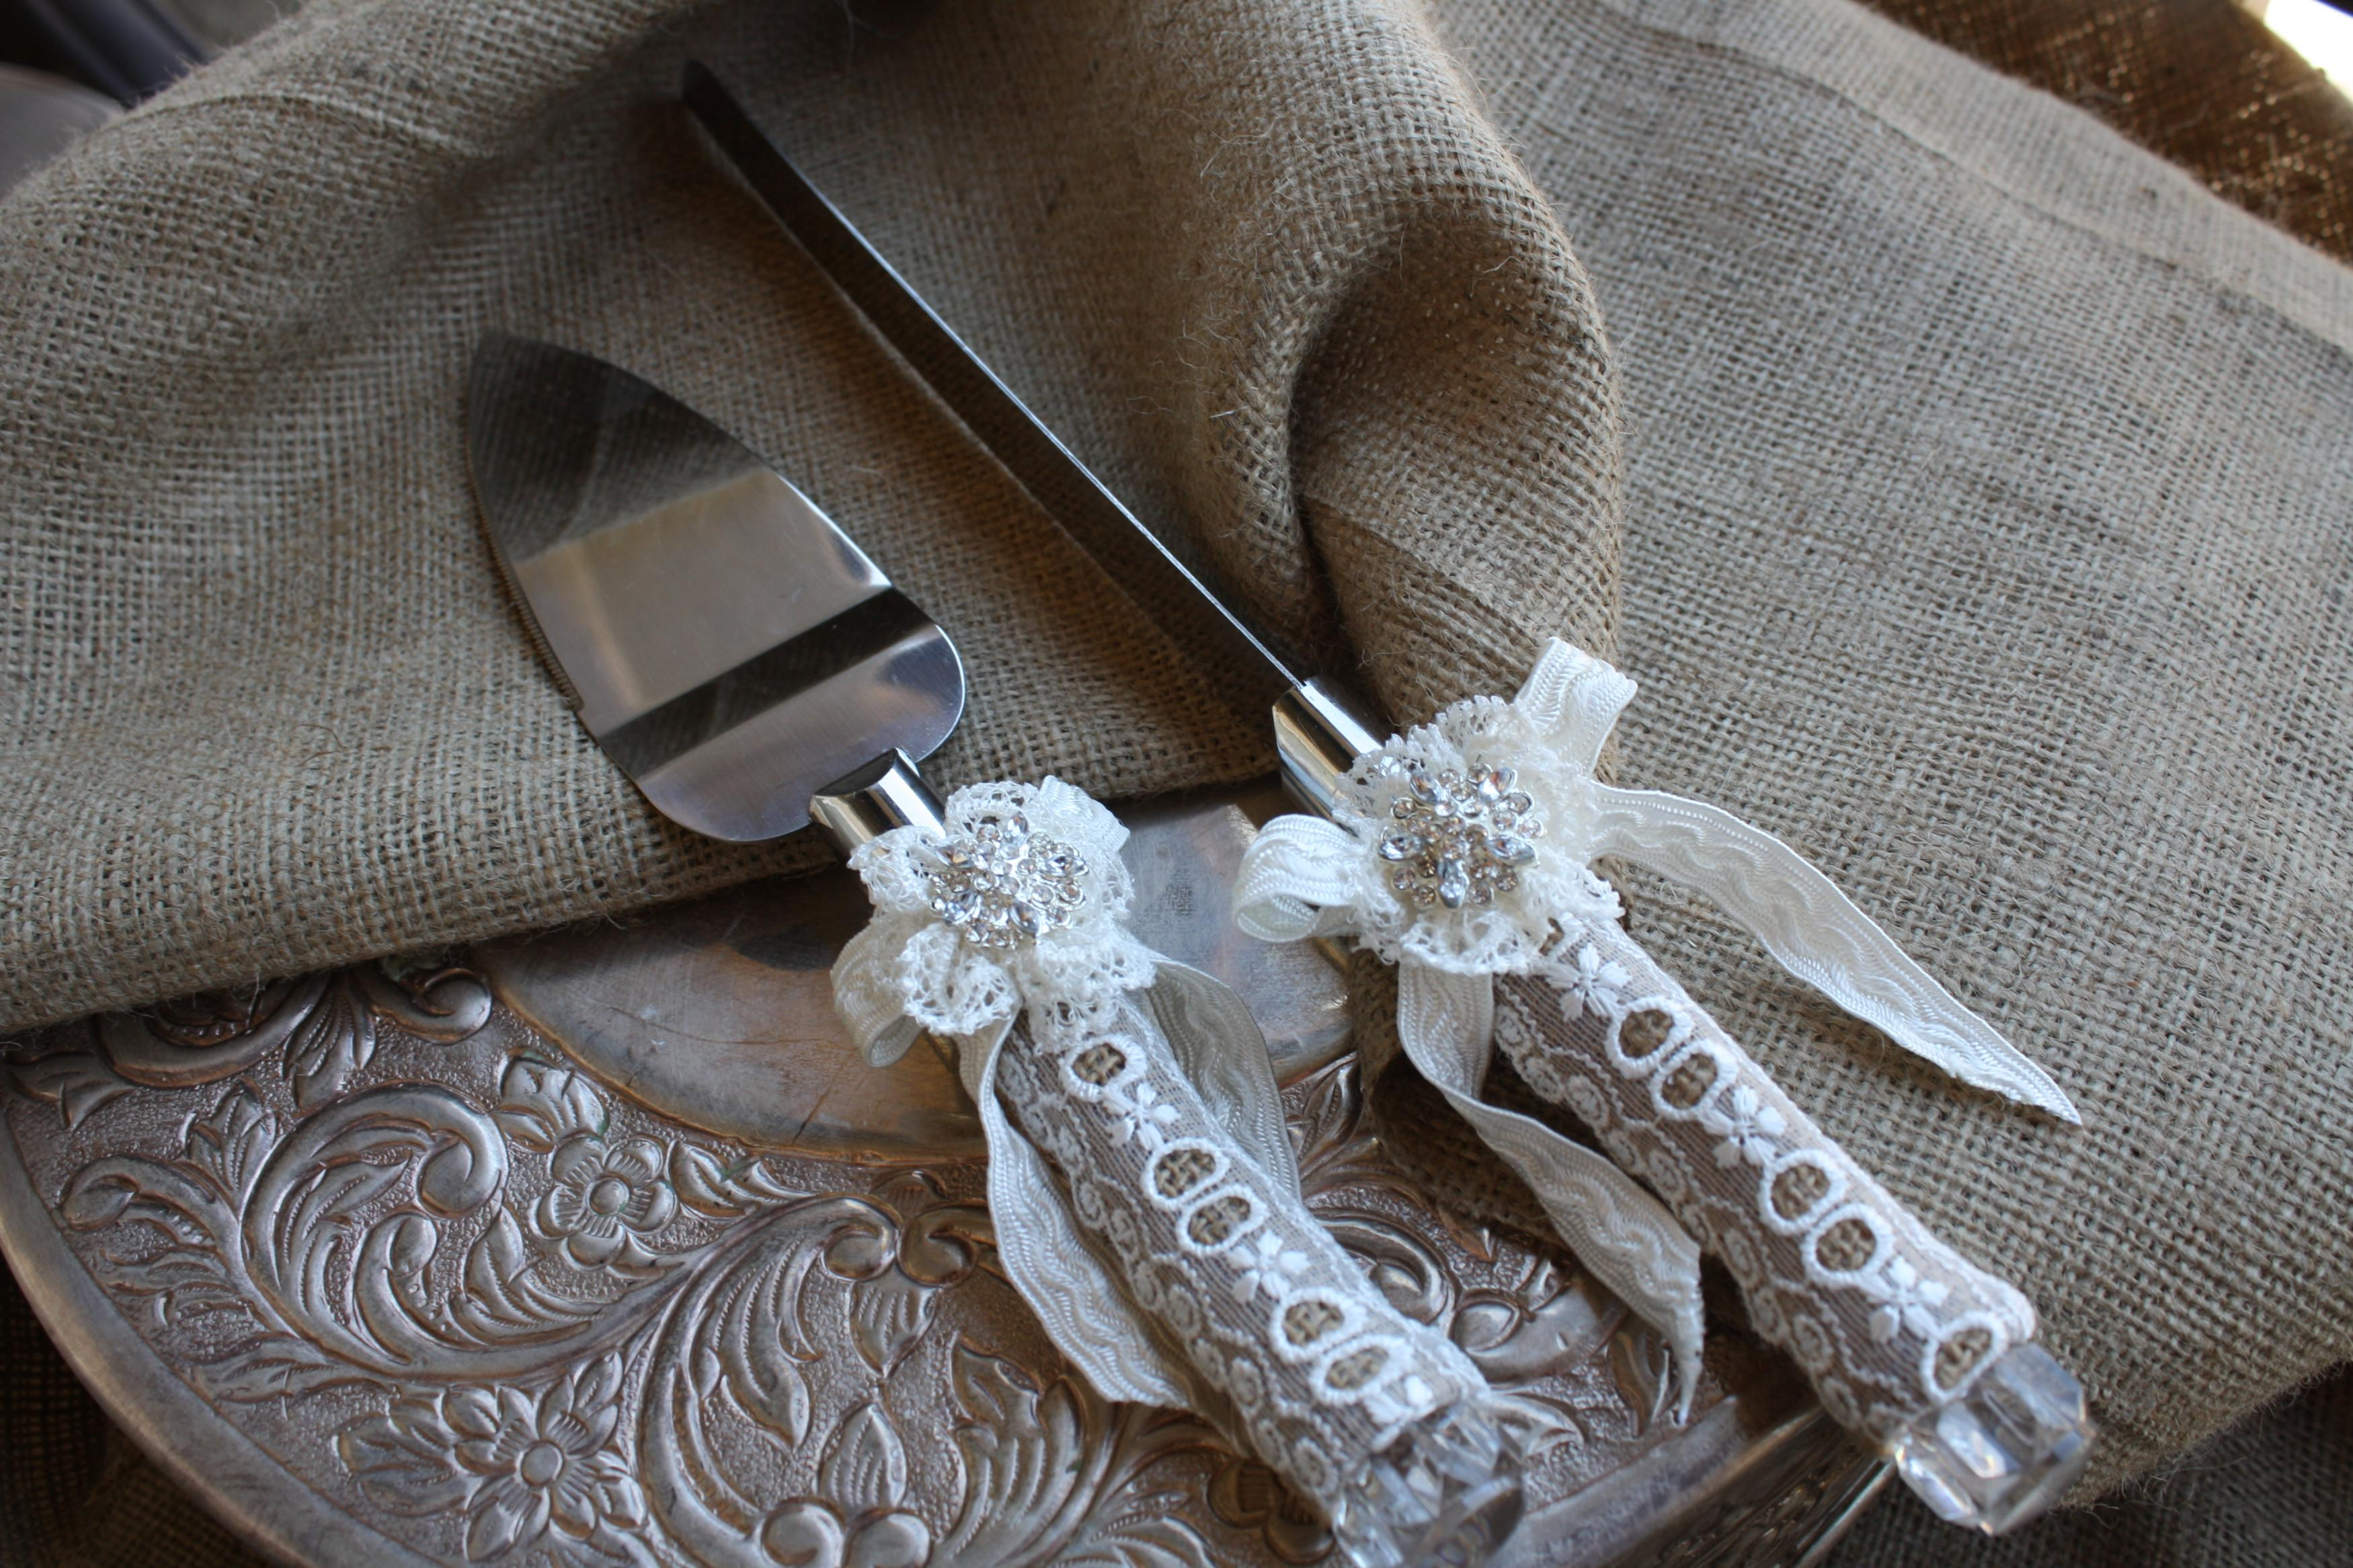 Wedding Cake Server And Knife Set Country Rustic Chic Burlap Lace